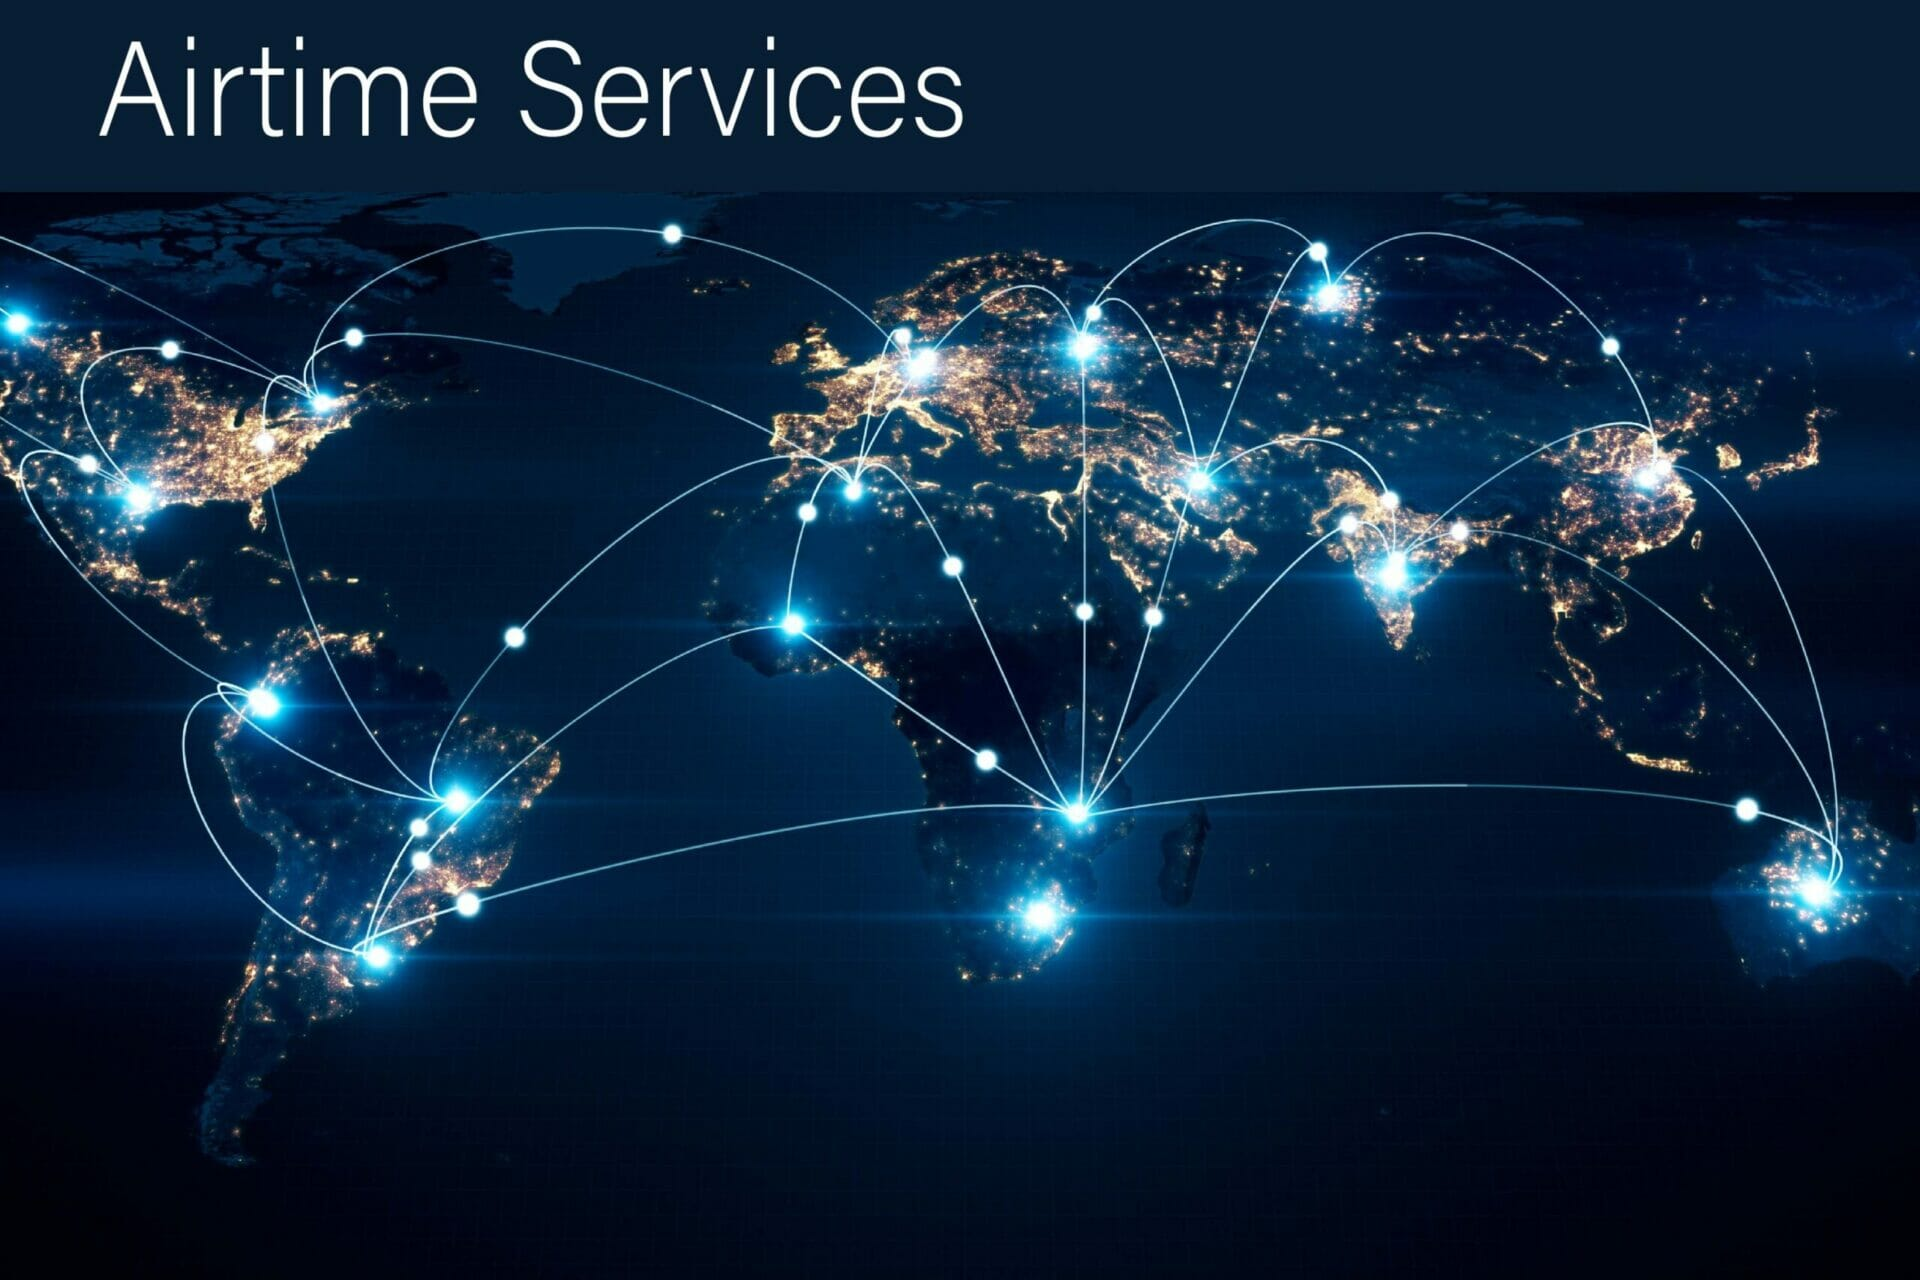 airtime services home